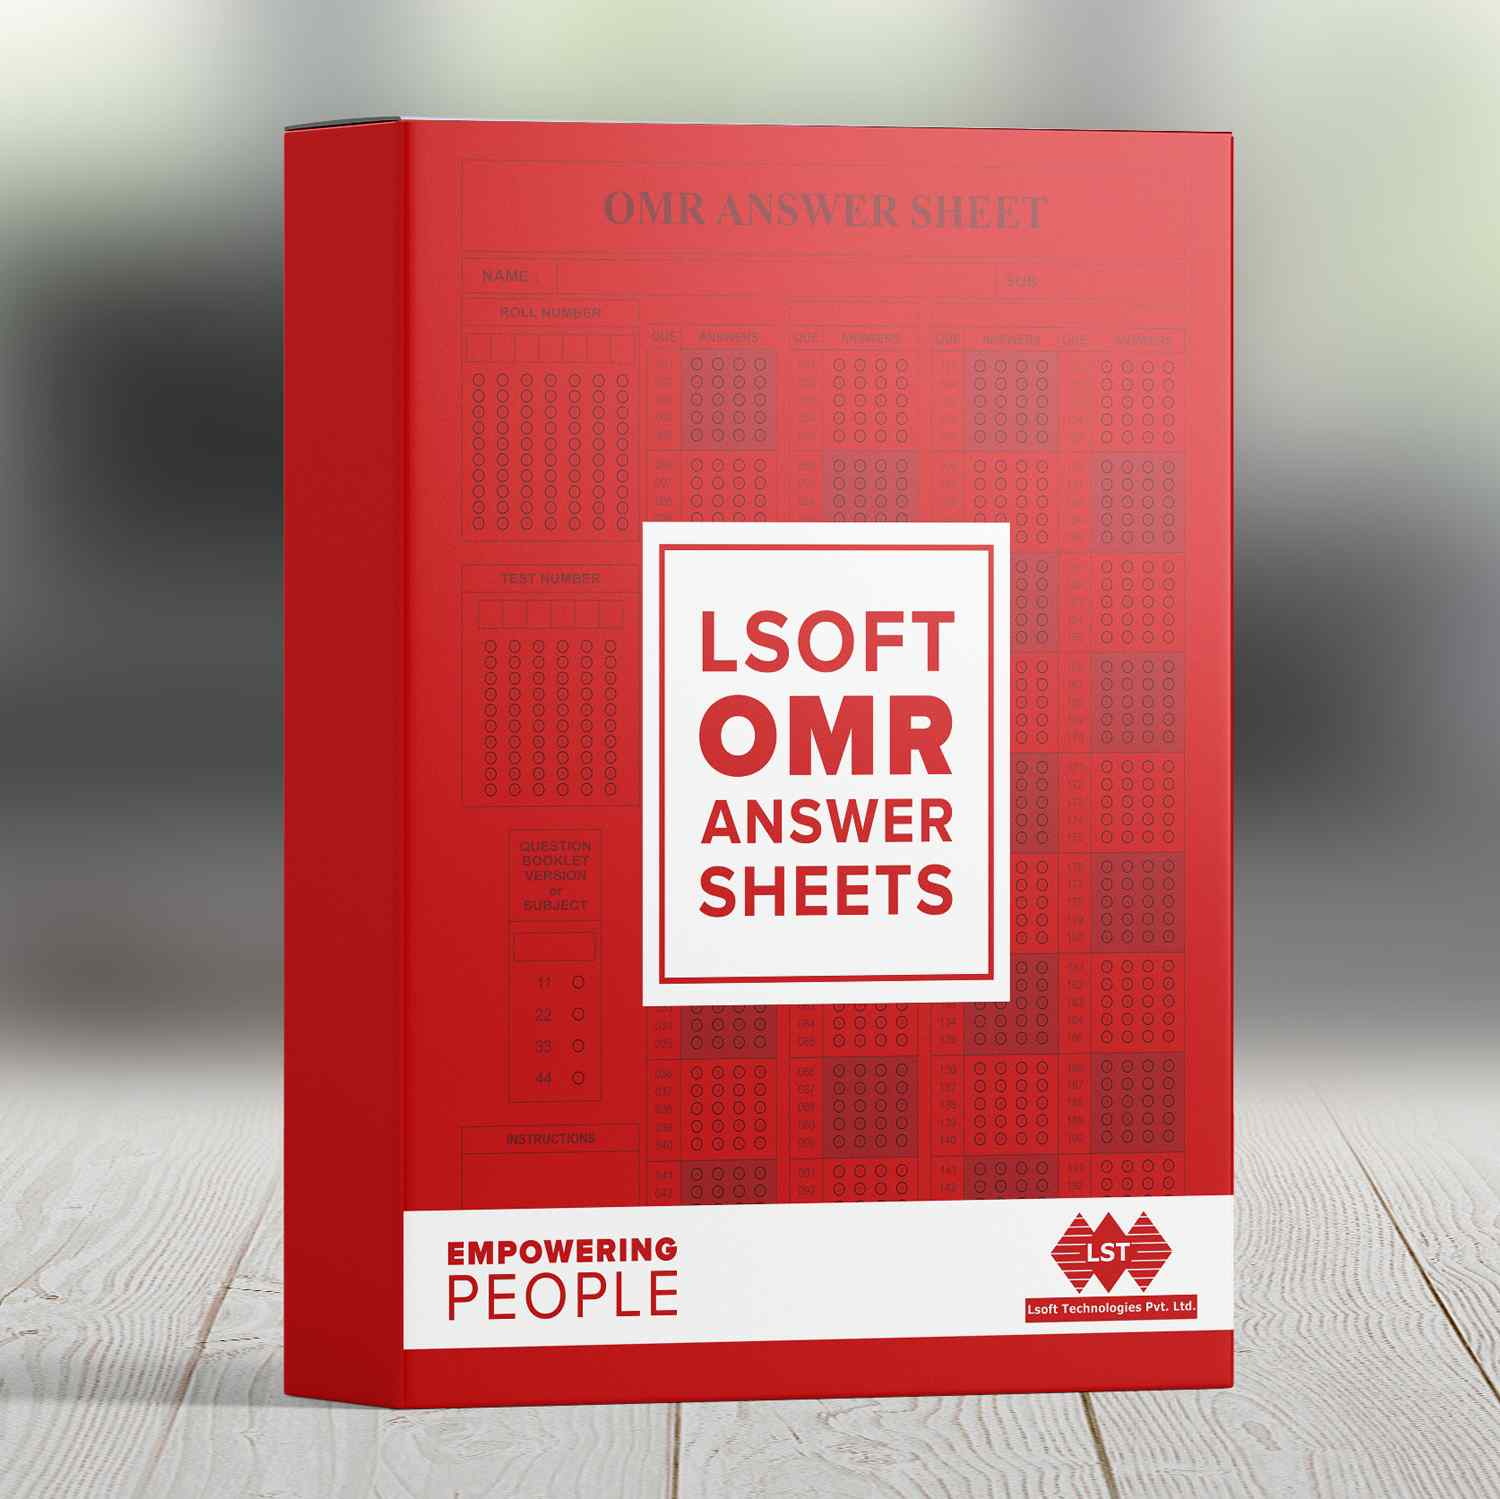 OMR Answer Sheets